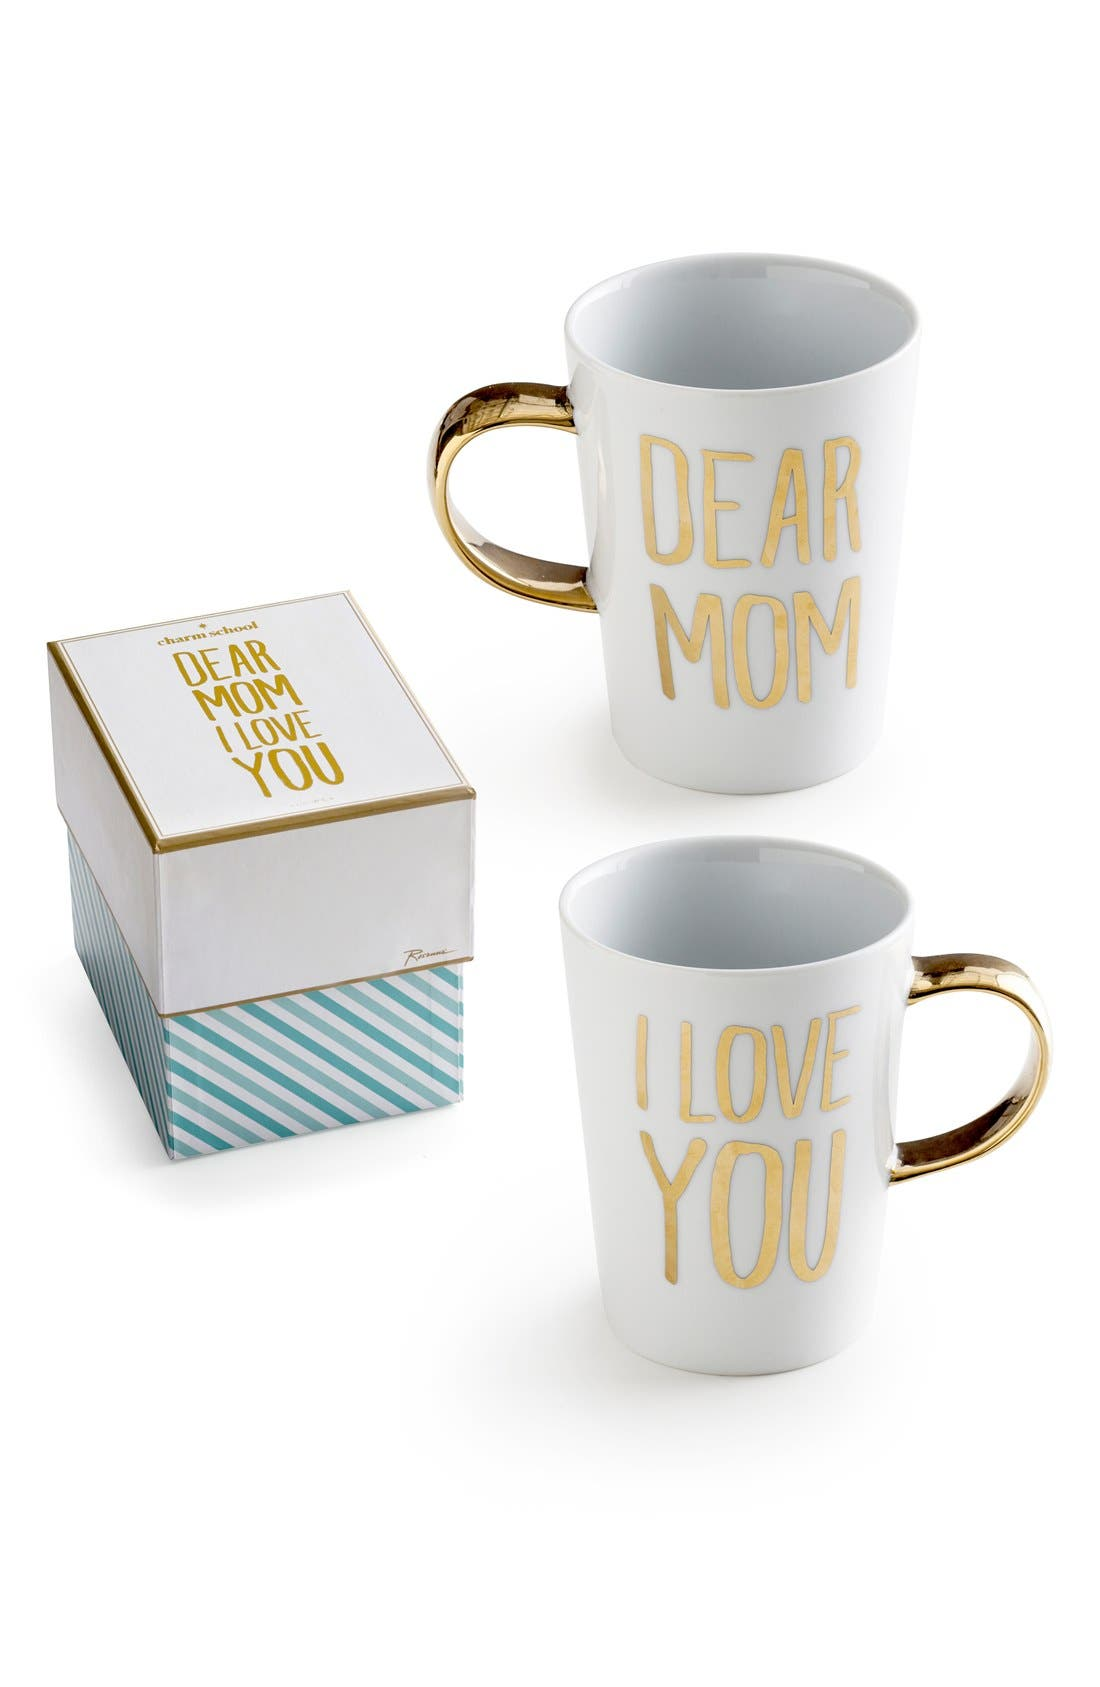 Main Image - Rosanna 'Dear Mom I Love You' Porcelain Coffee Mug